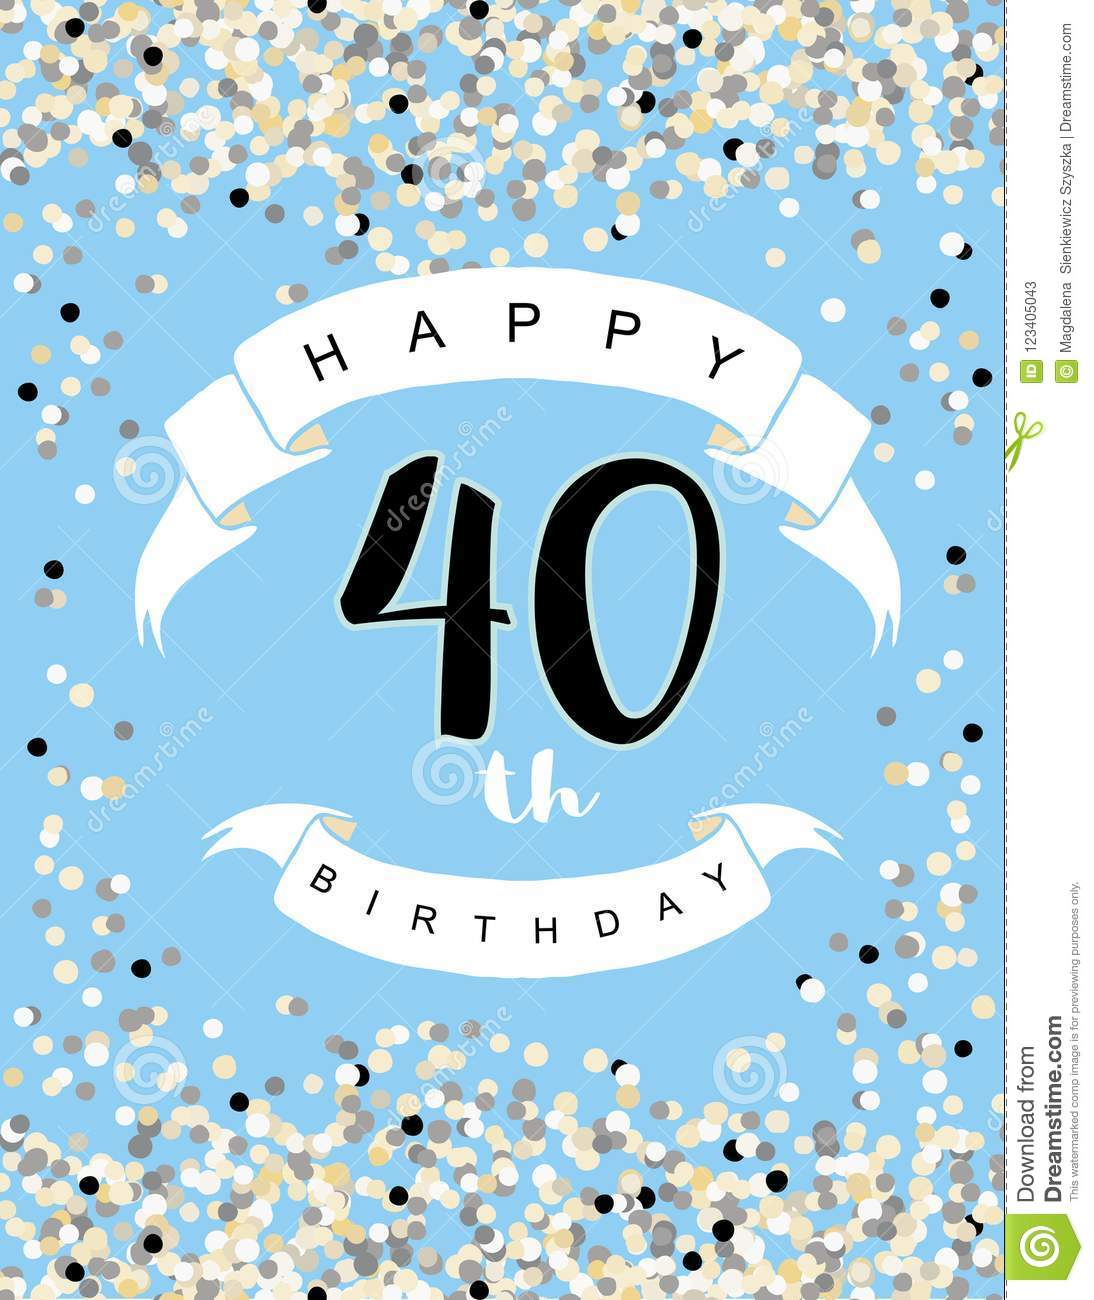 Happy 40th Birthday Vector Illustration Blue Background With Light Confetti White Ribbons And Black